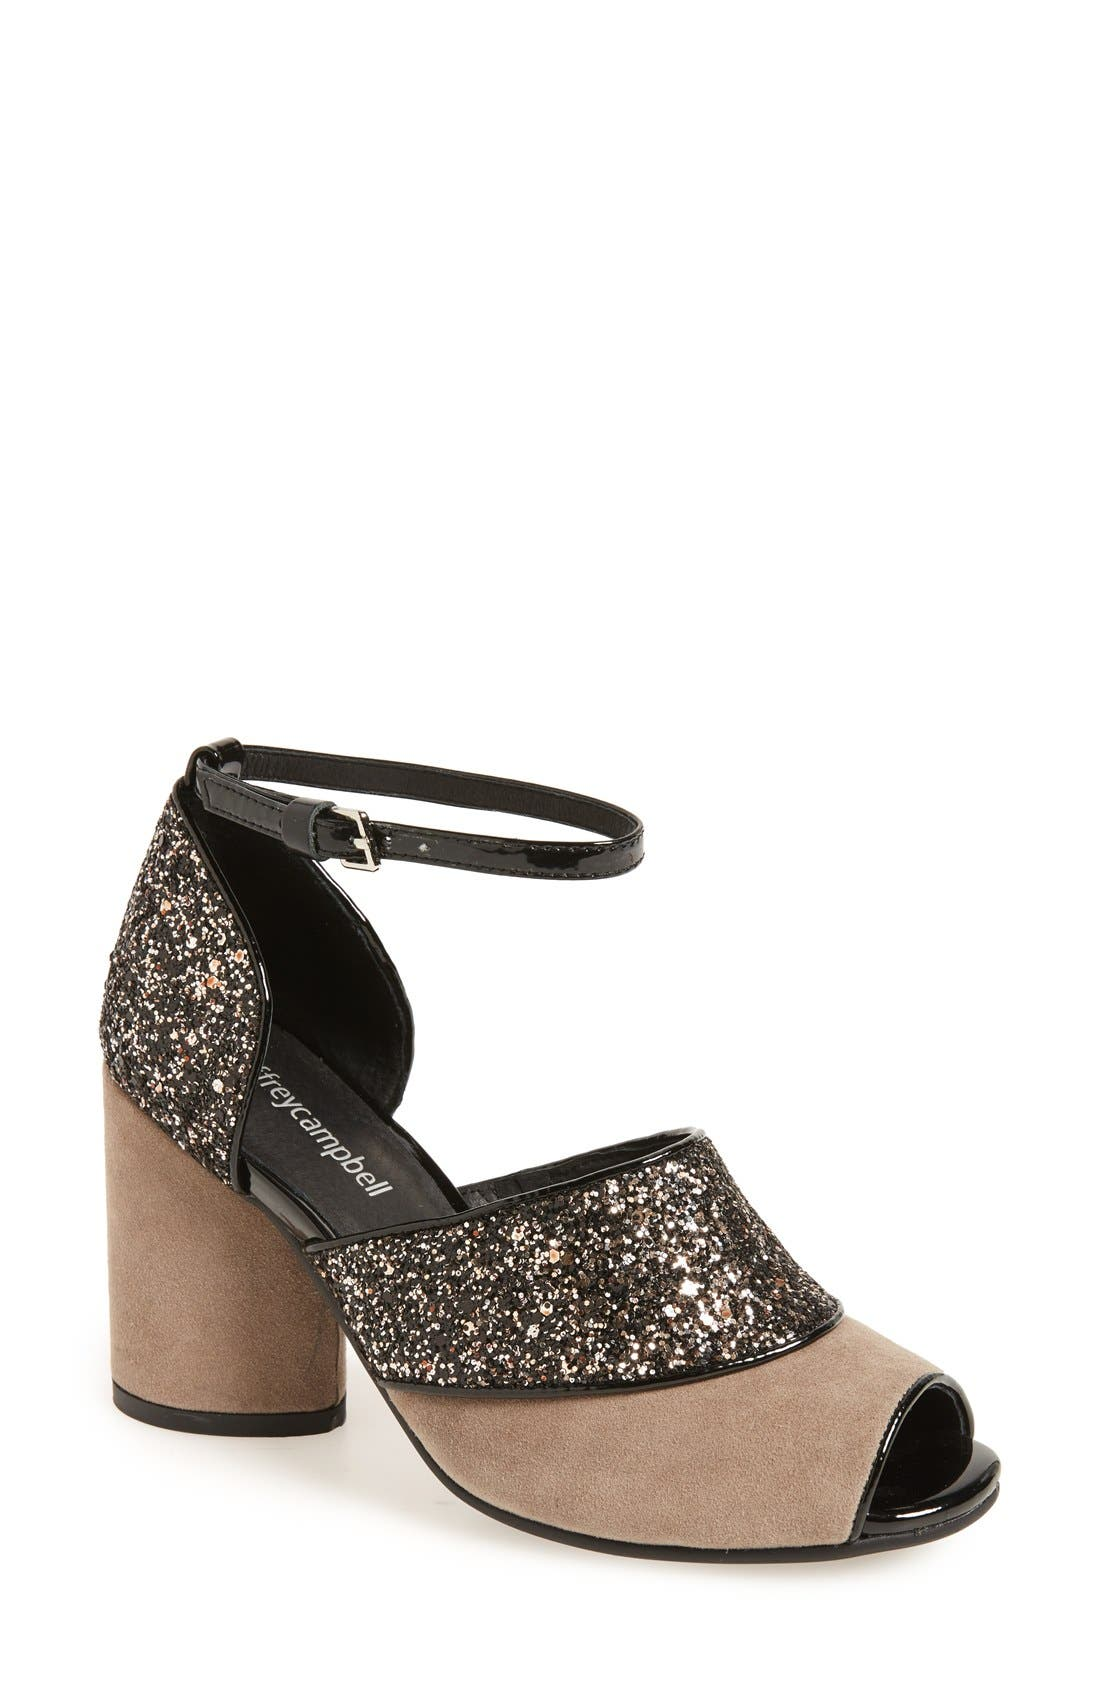 Alternate Image 1 Selected - Jeffrey Campbell 'Bibana' Glitter Sandal (Women)